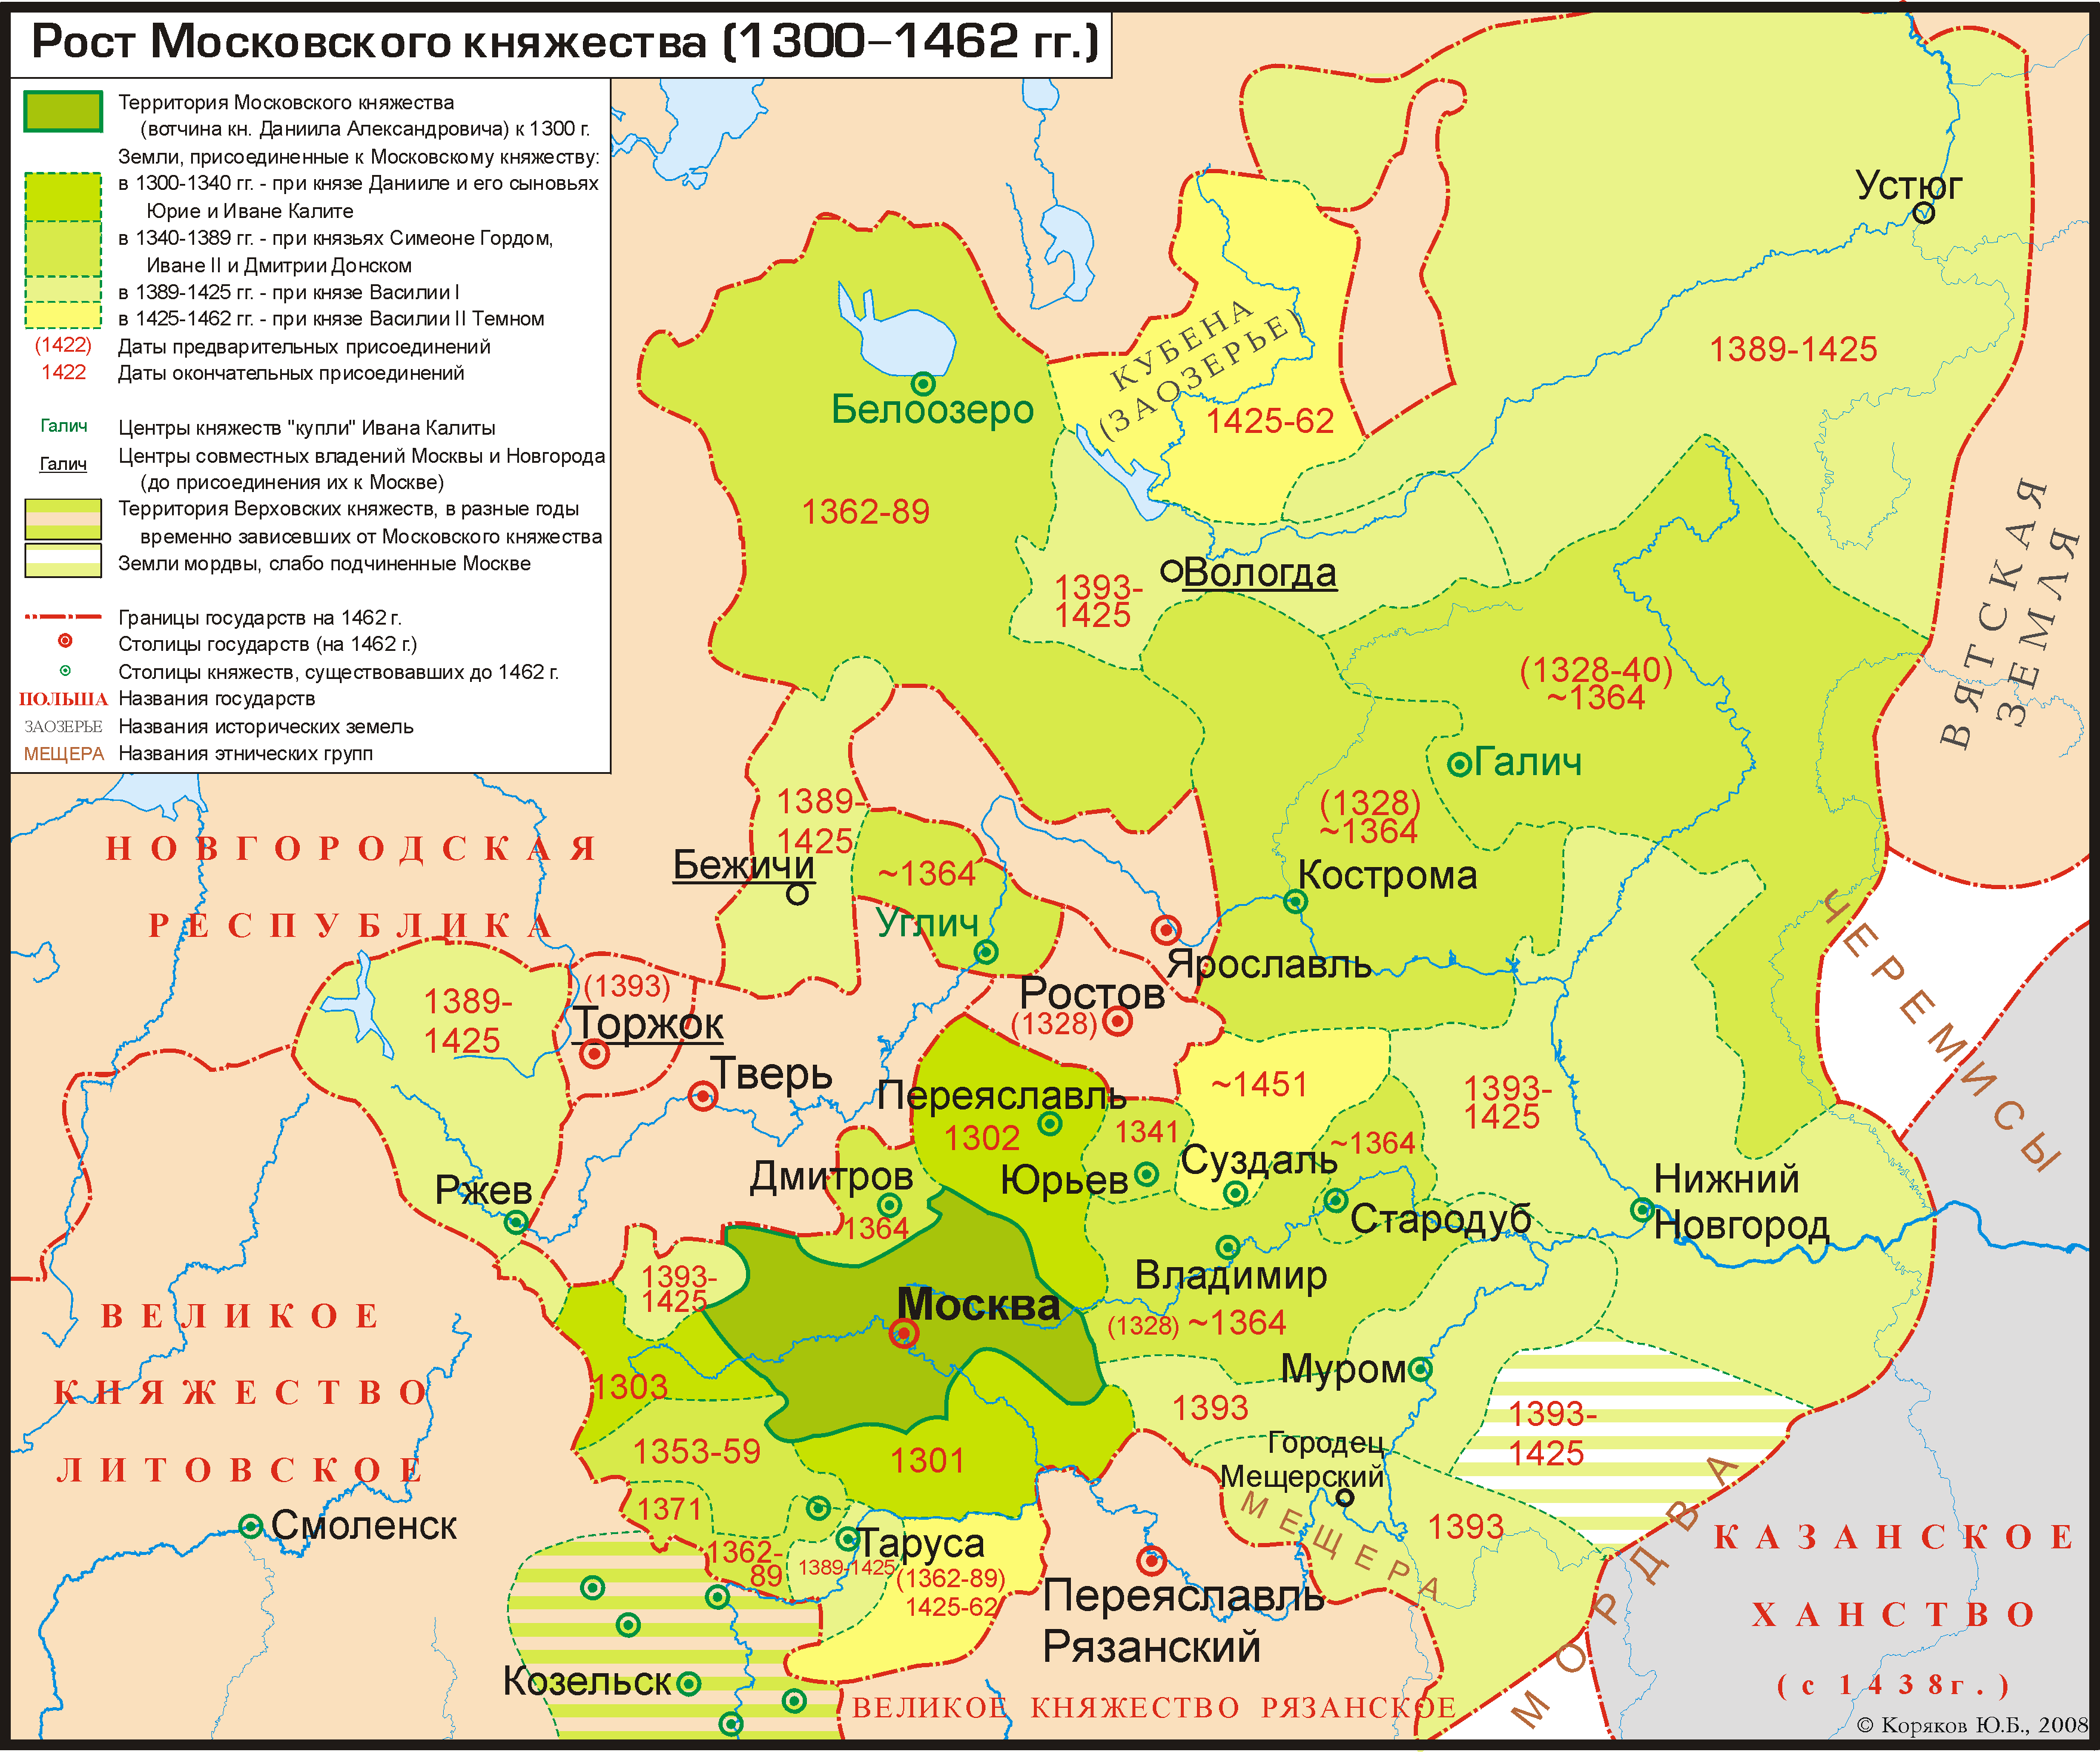 File:Muscovy 1300-1462.png